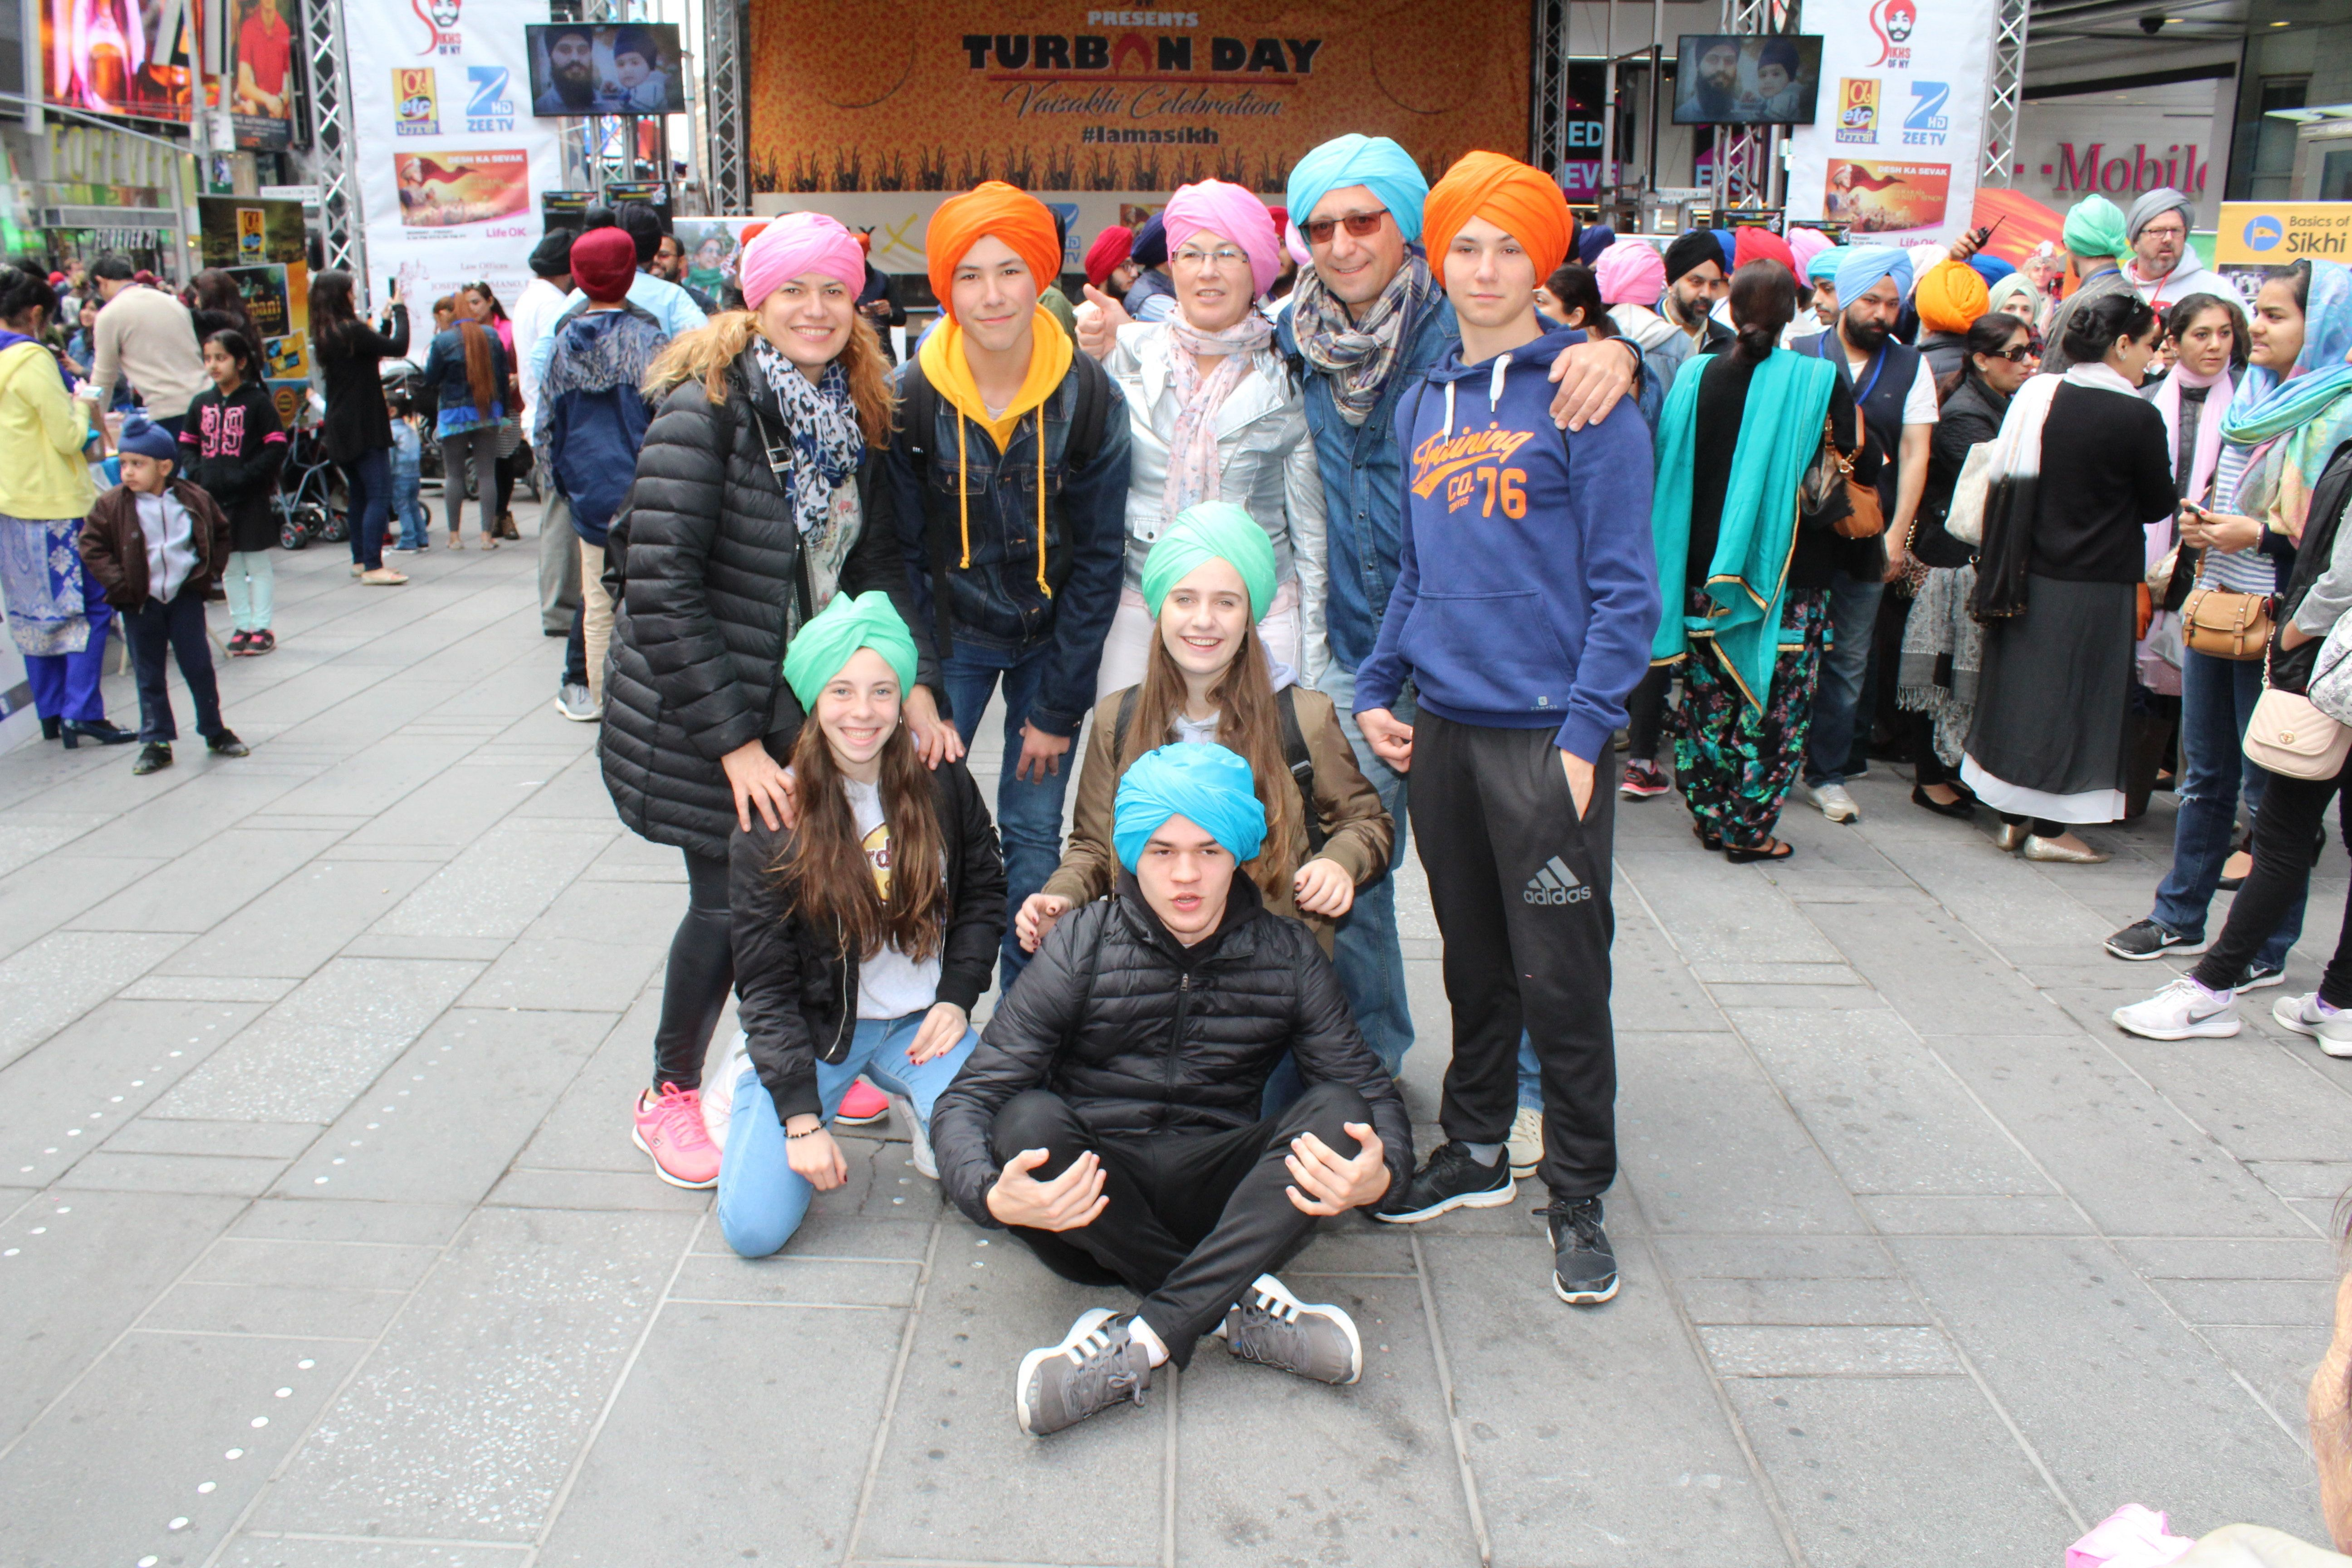 Volunteers tied turbans and educatedparticipantsabout the Sikh faith.